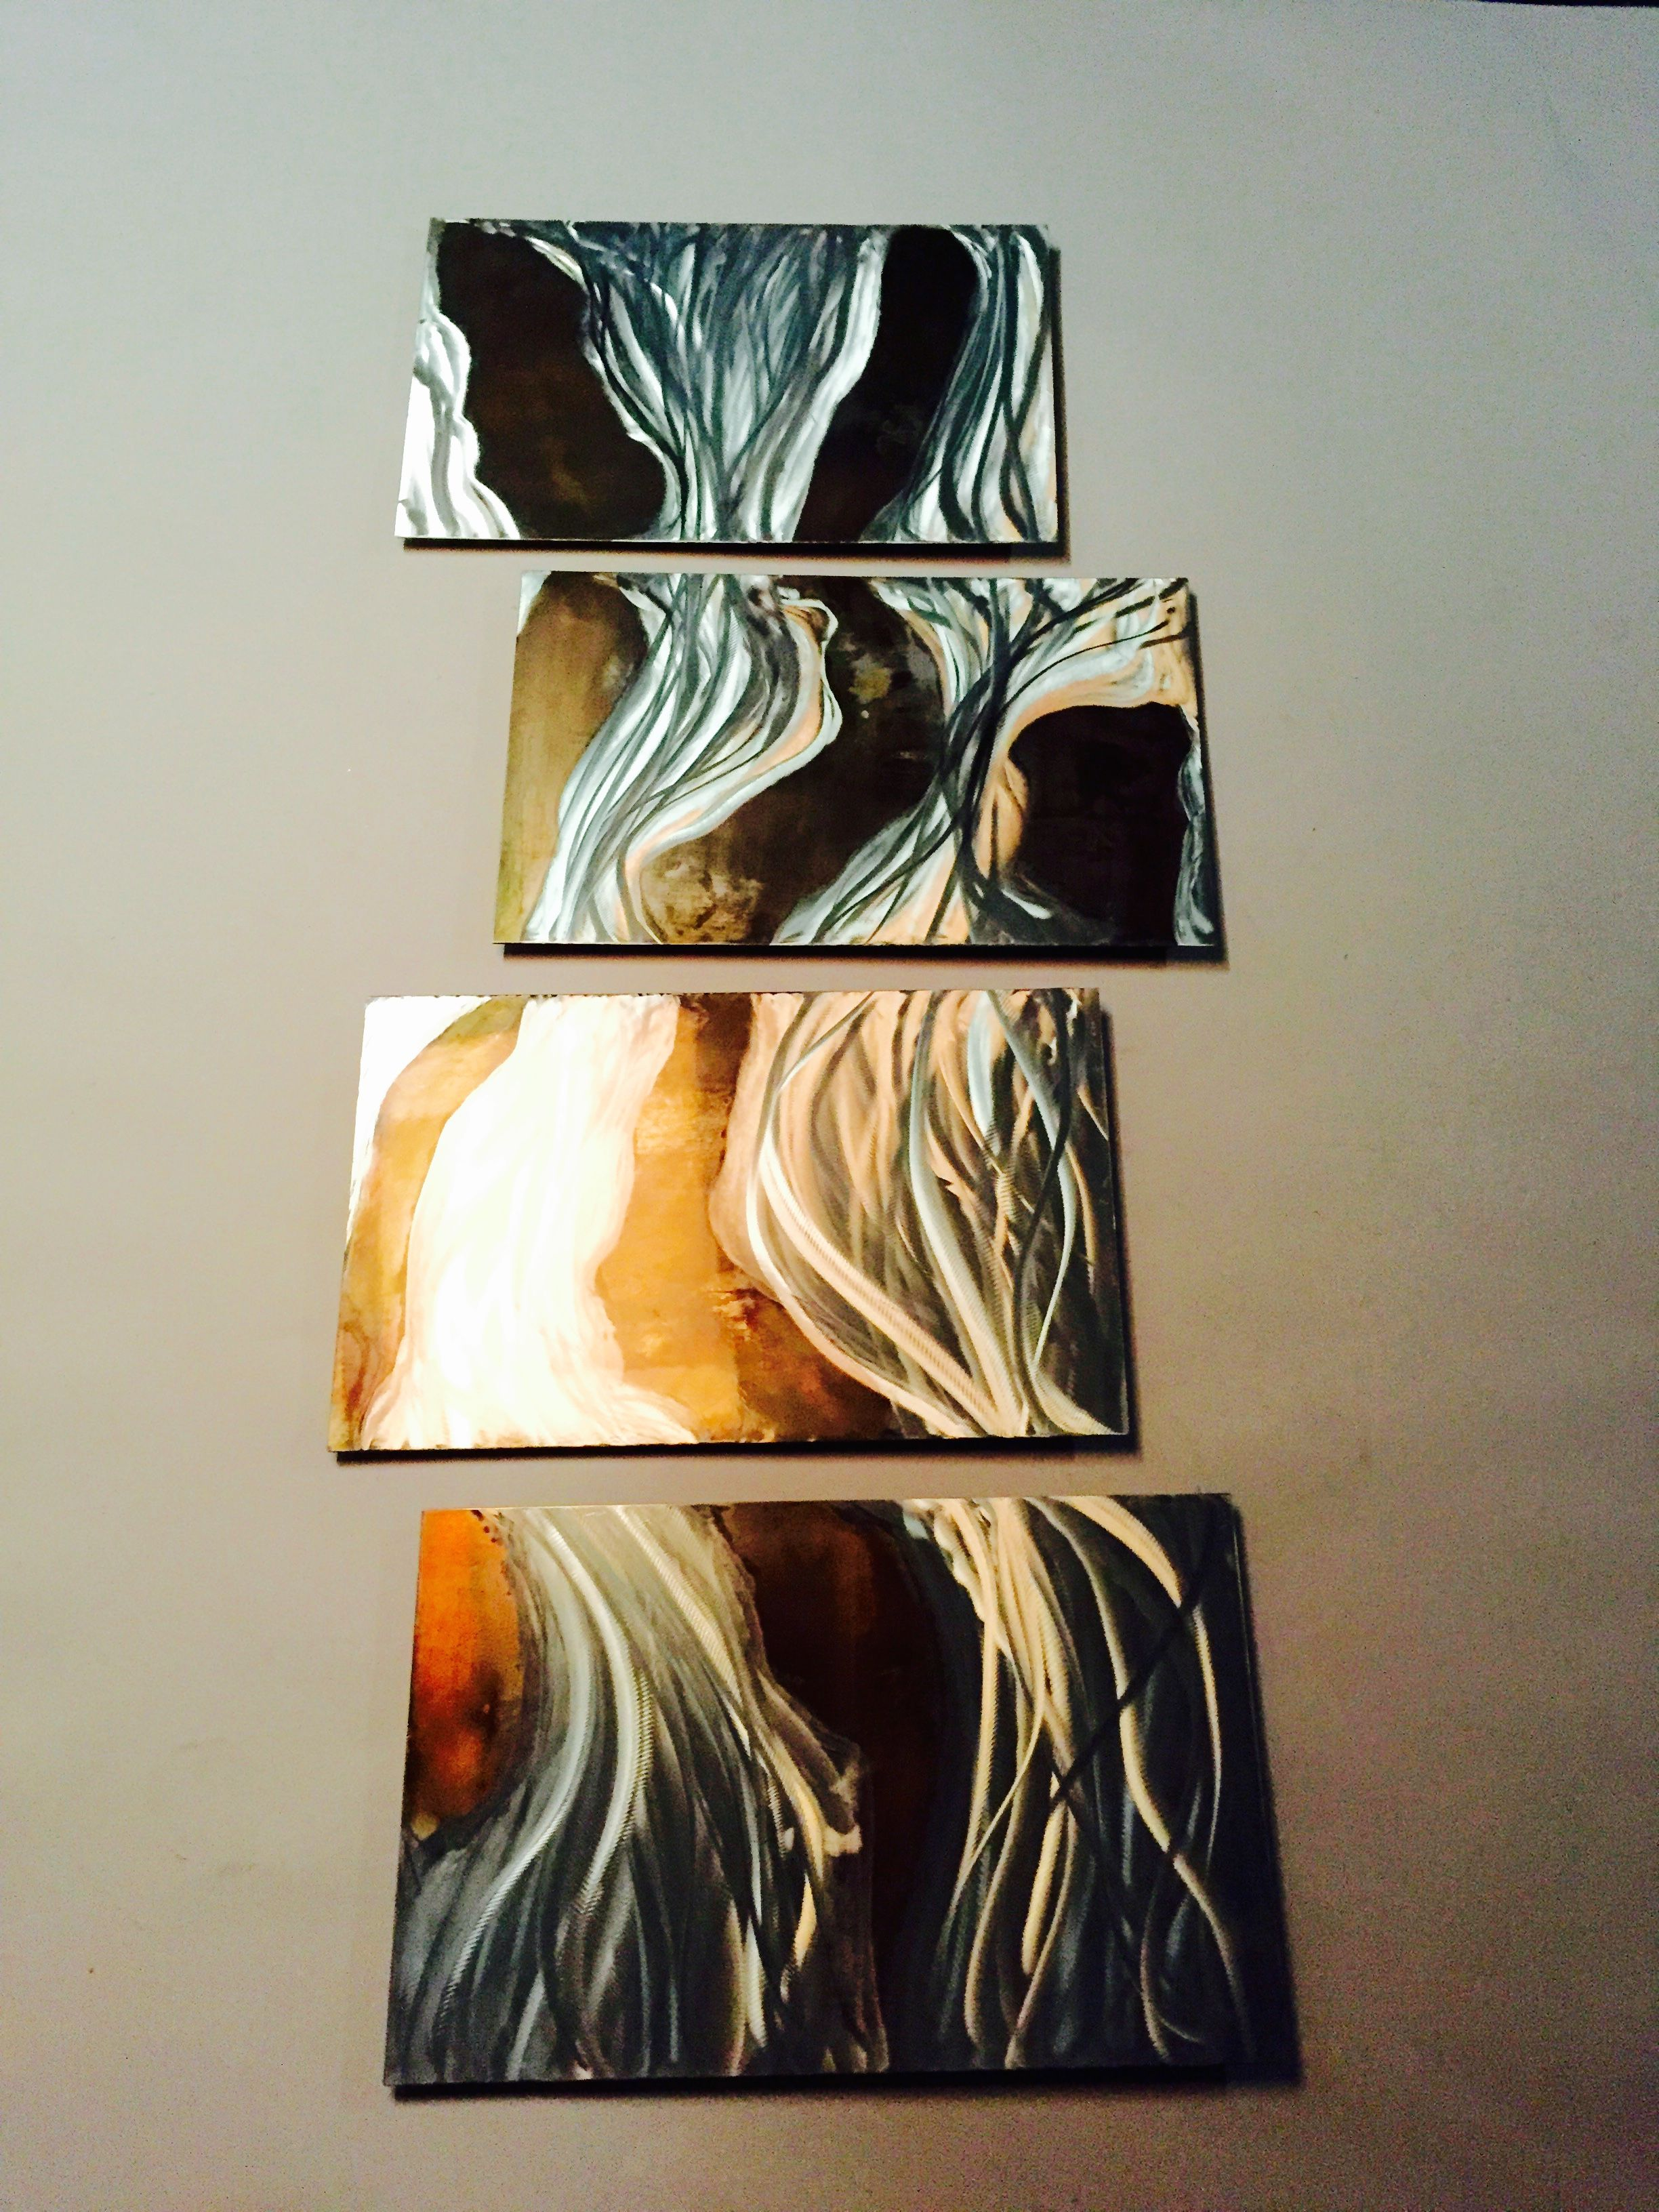 Metal Sculptures And Art Wall Decor: Custom Made Metal Wall Art By Torched Metal Works